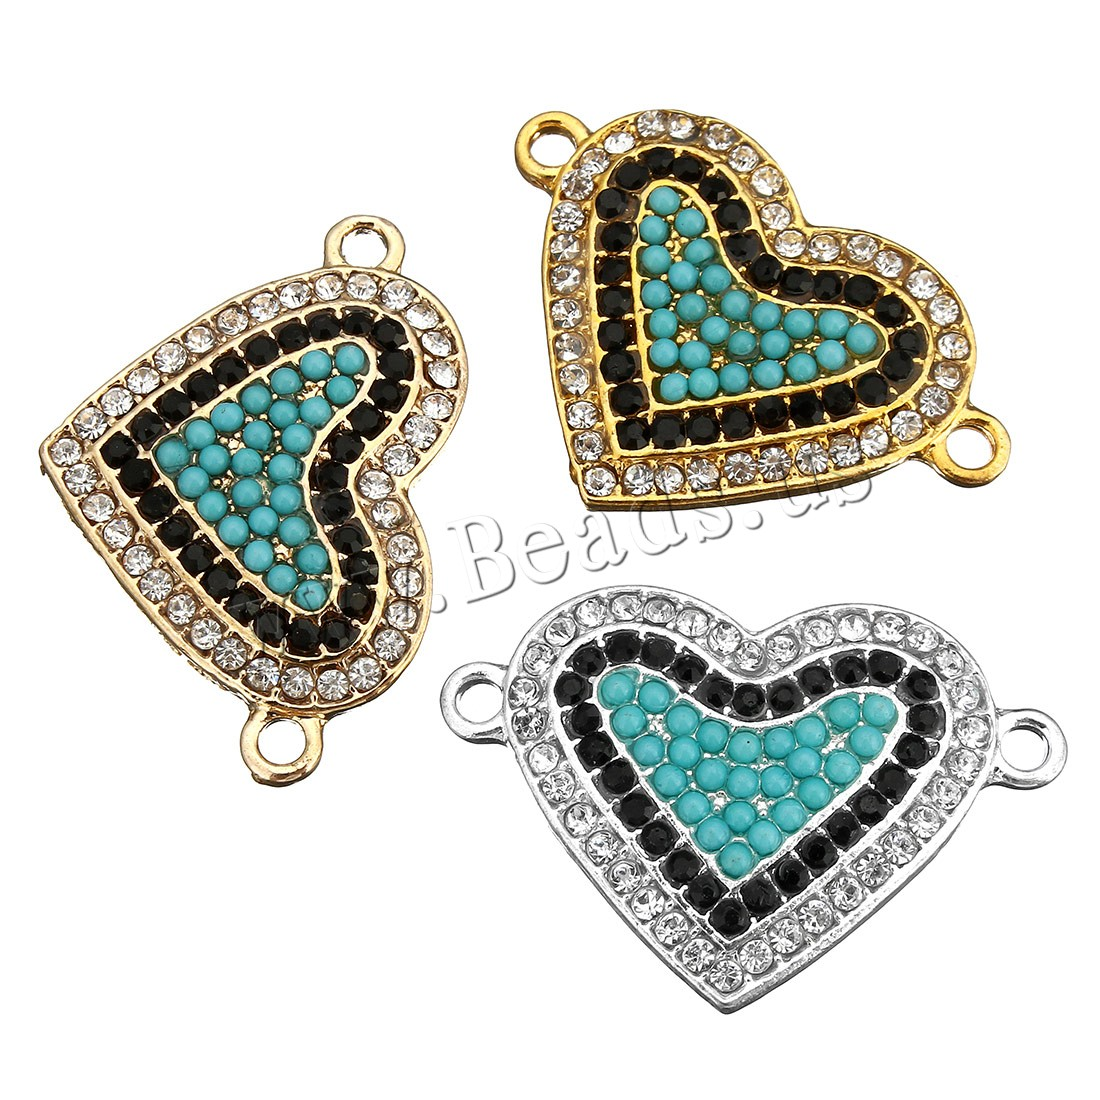 Buy Cubic Zirconia Micro Pave Brass Connector Glass Seed Beads Heart gold color plated micro pave cubic zirconia & 1/1 loop colors choice 31x41x4mm Hole:Approx 2mm 5 Sold Lot